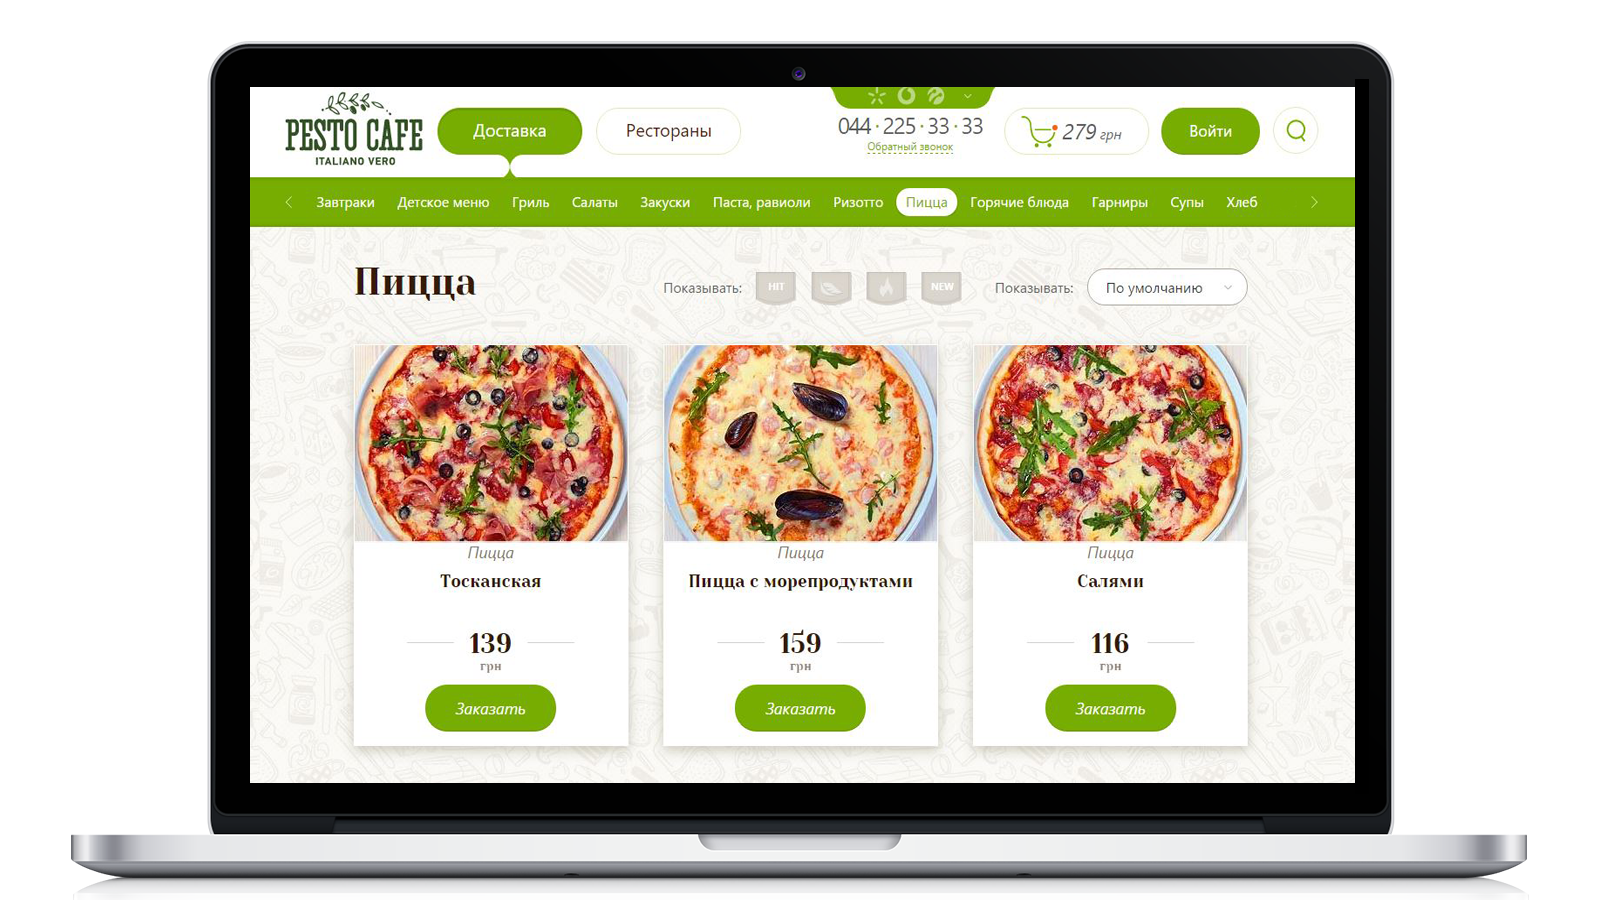 The website for the network of Italian restaurants PESTO CAFE